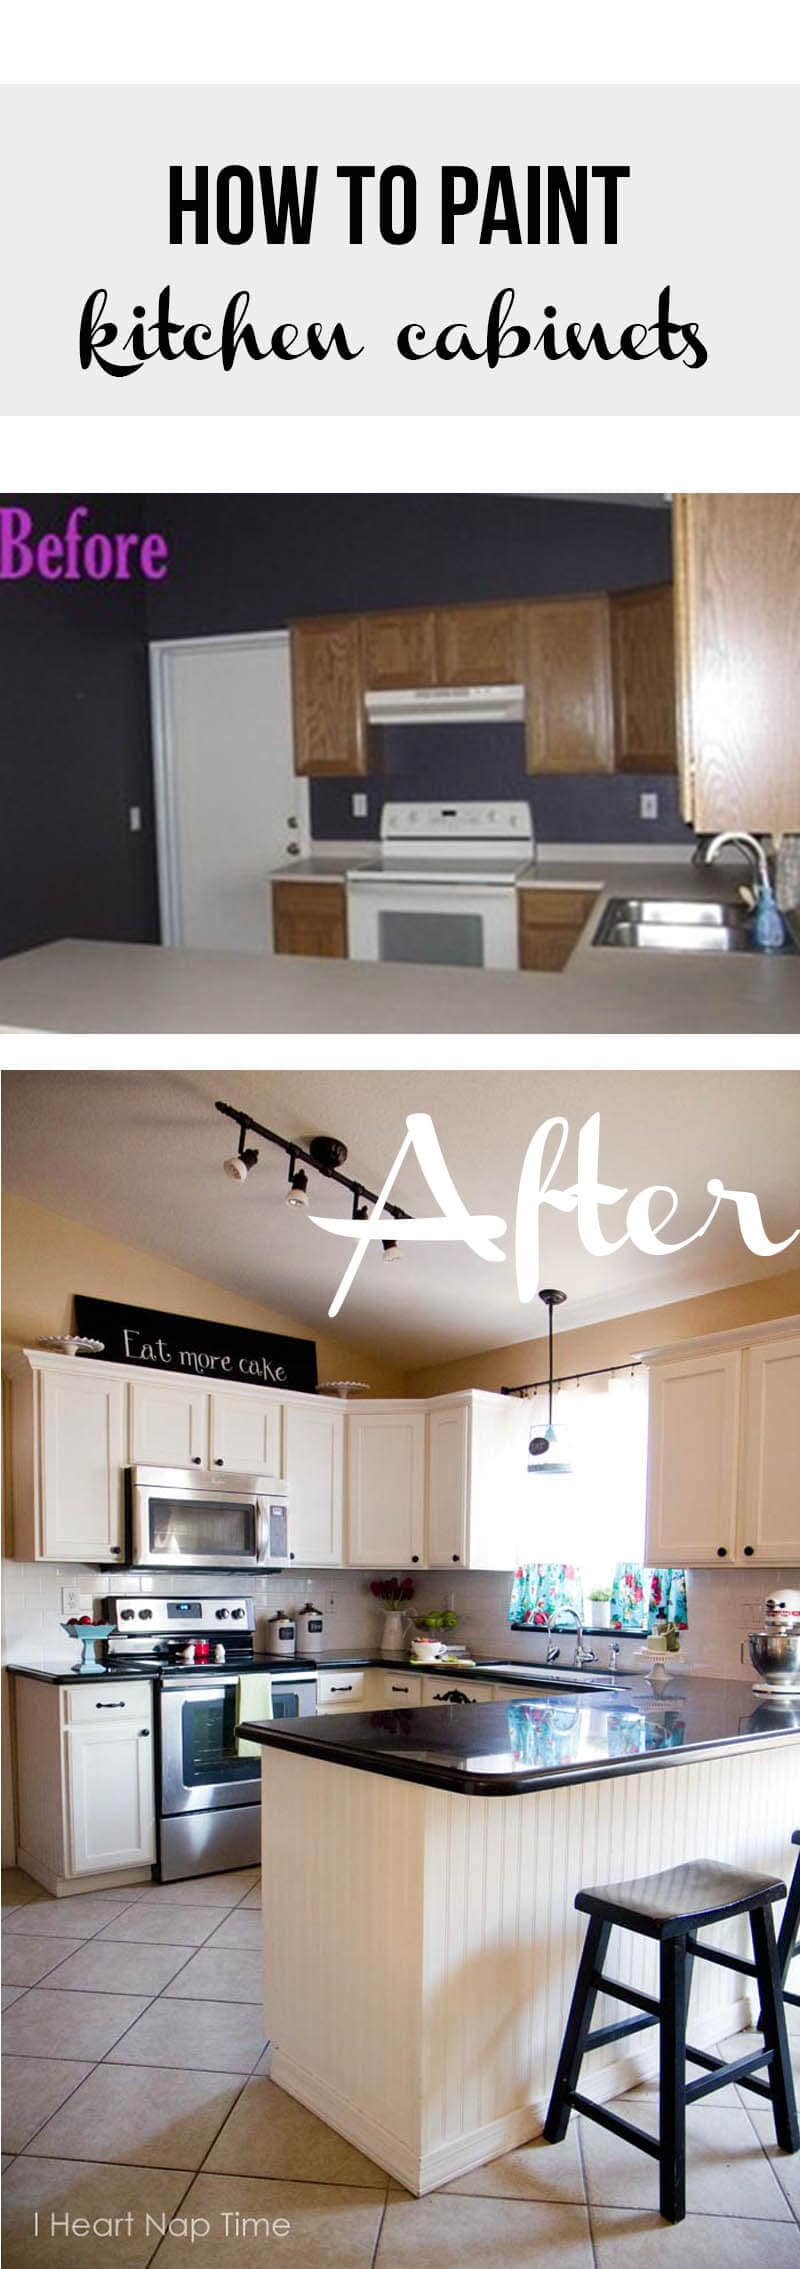 kitchen makeover redoing kitchen cabinets how to paint kitchen cabinets